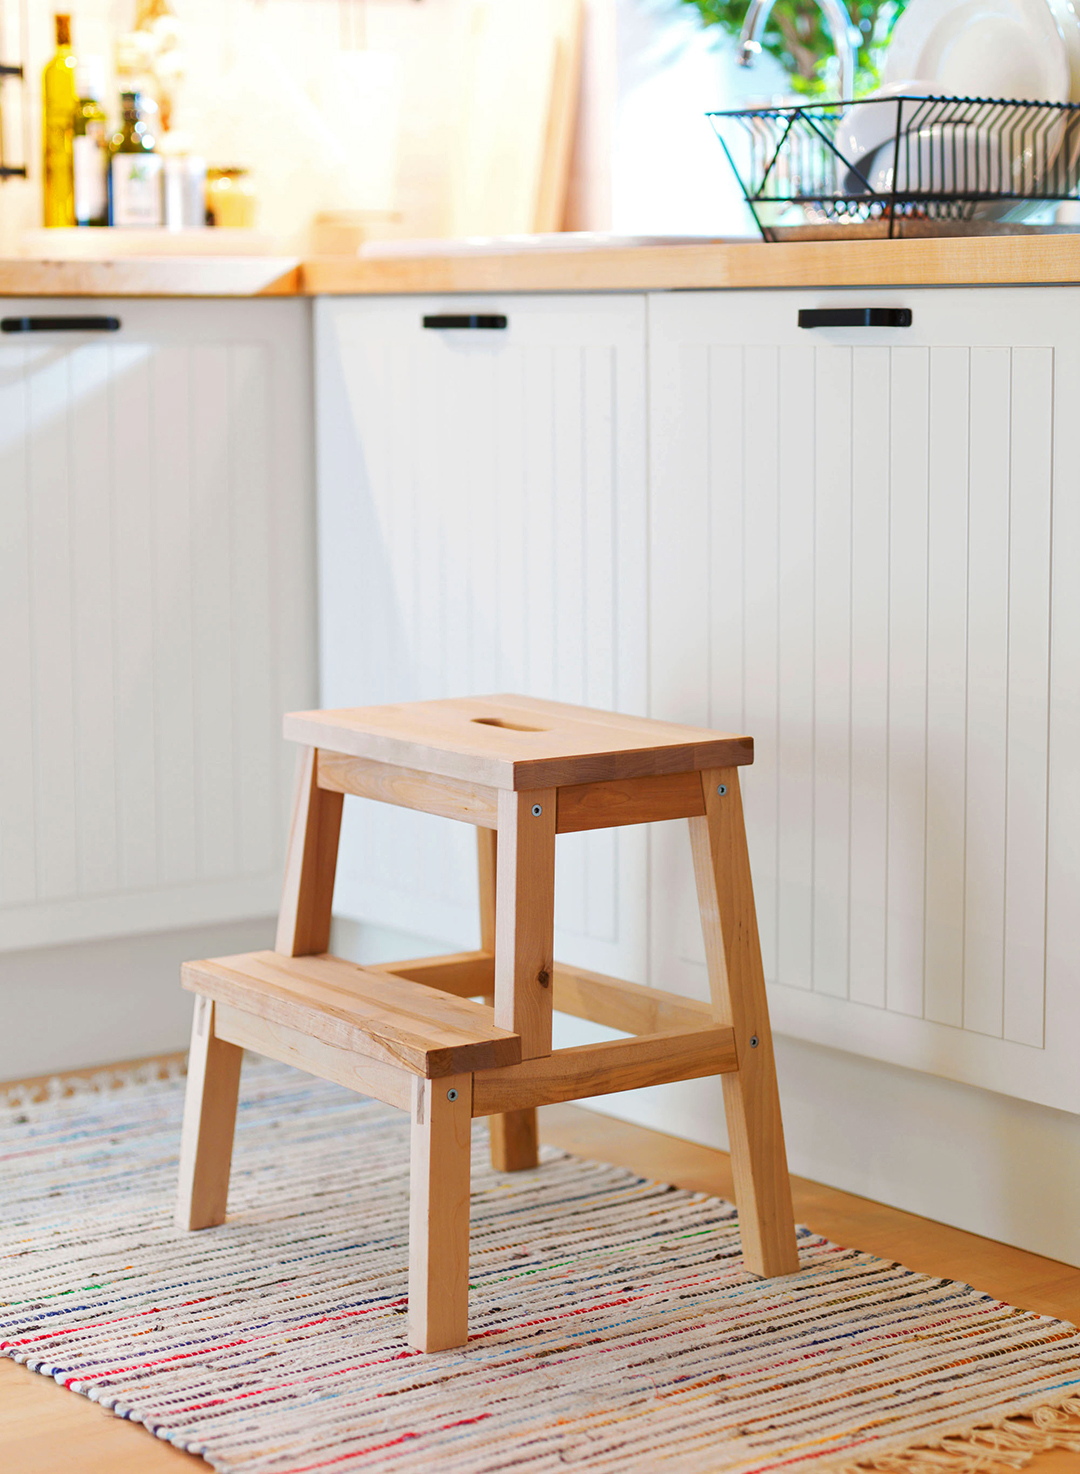 wooden bekvam step stool in kitchen on braided rug